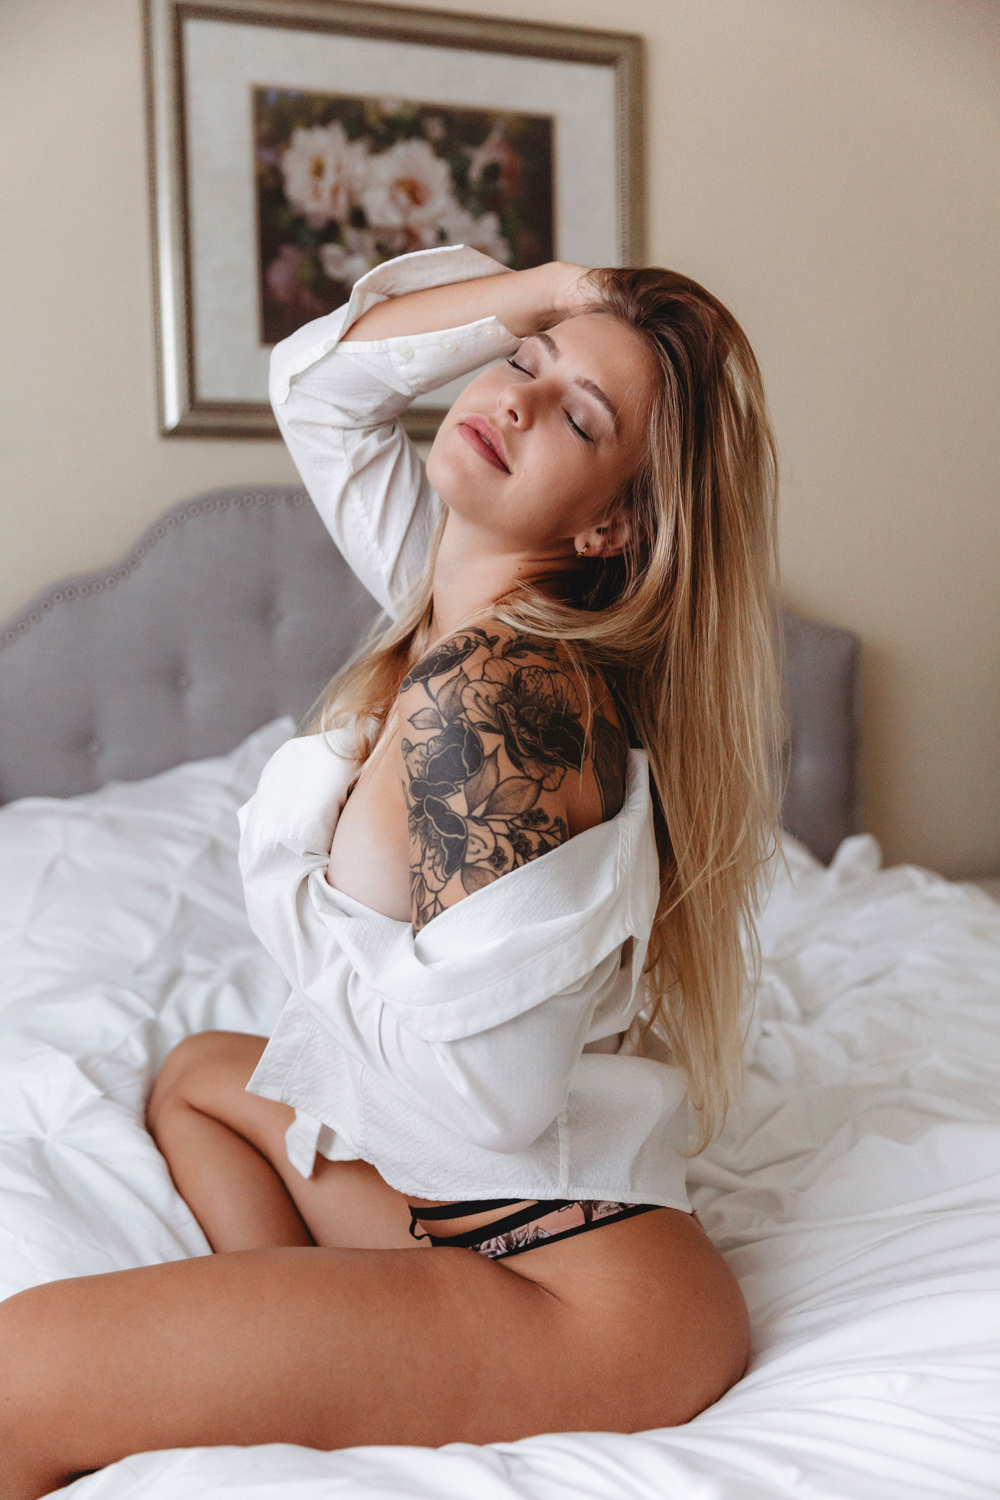 Naples Boudoir Photographer, woman with flower tattoo